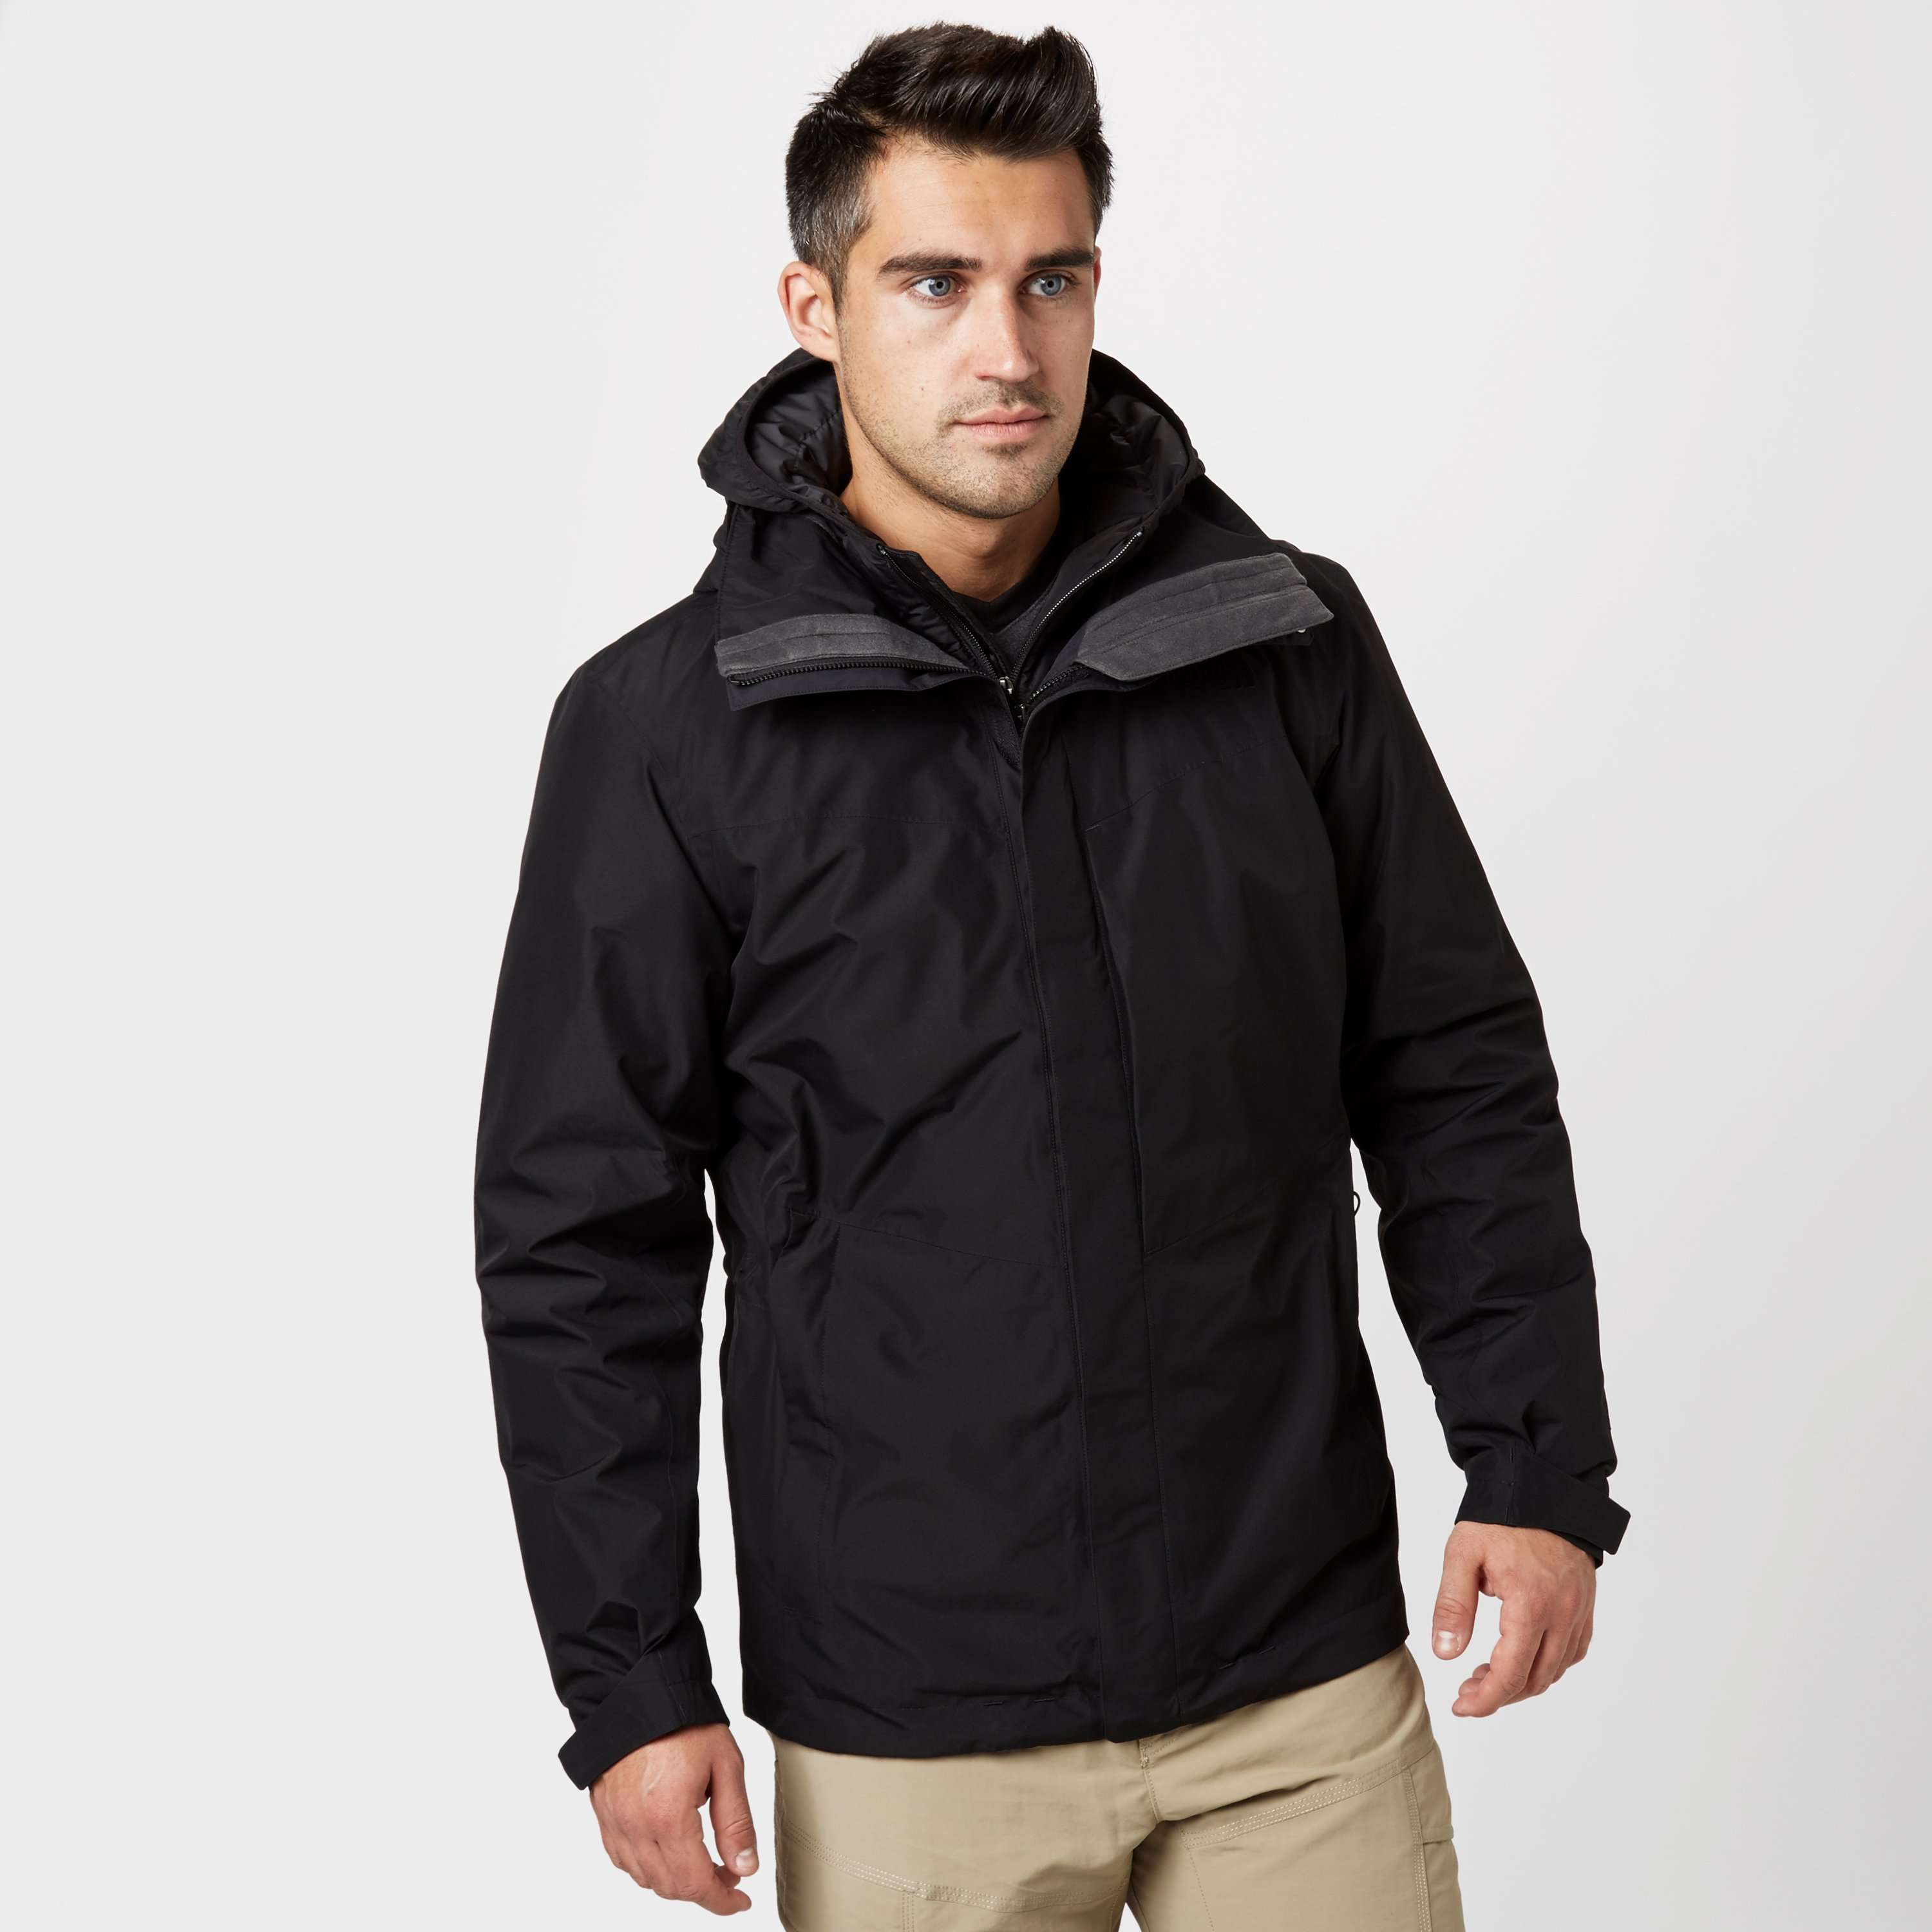 THE NORTH FACE Men's All Terrain GORE-TEX® Jacket